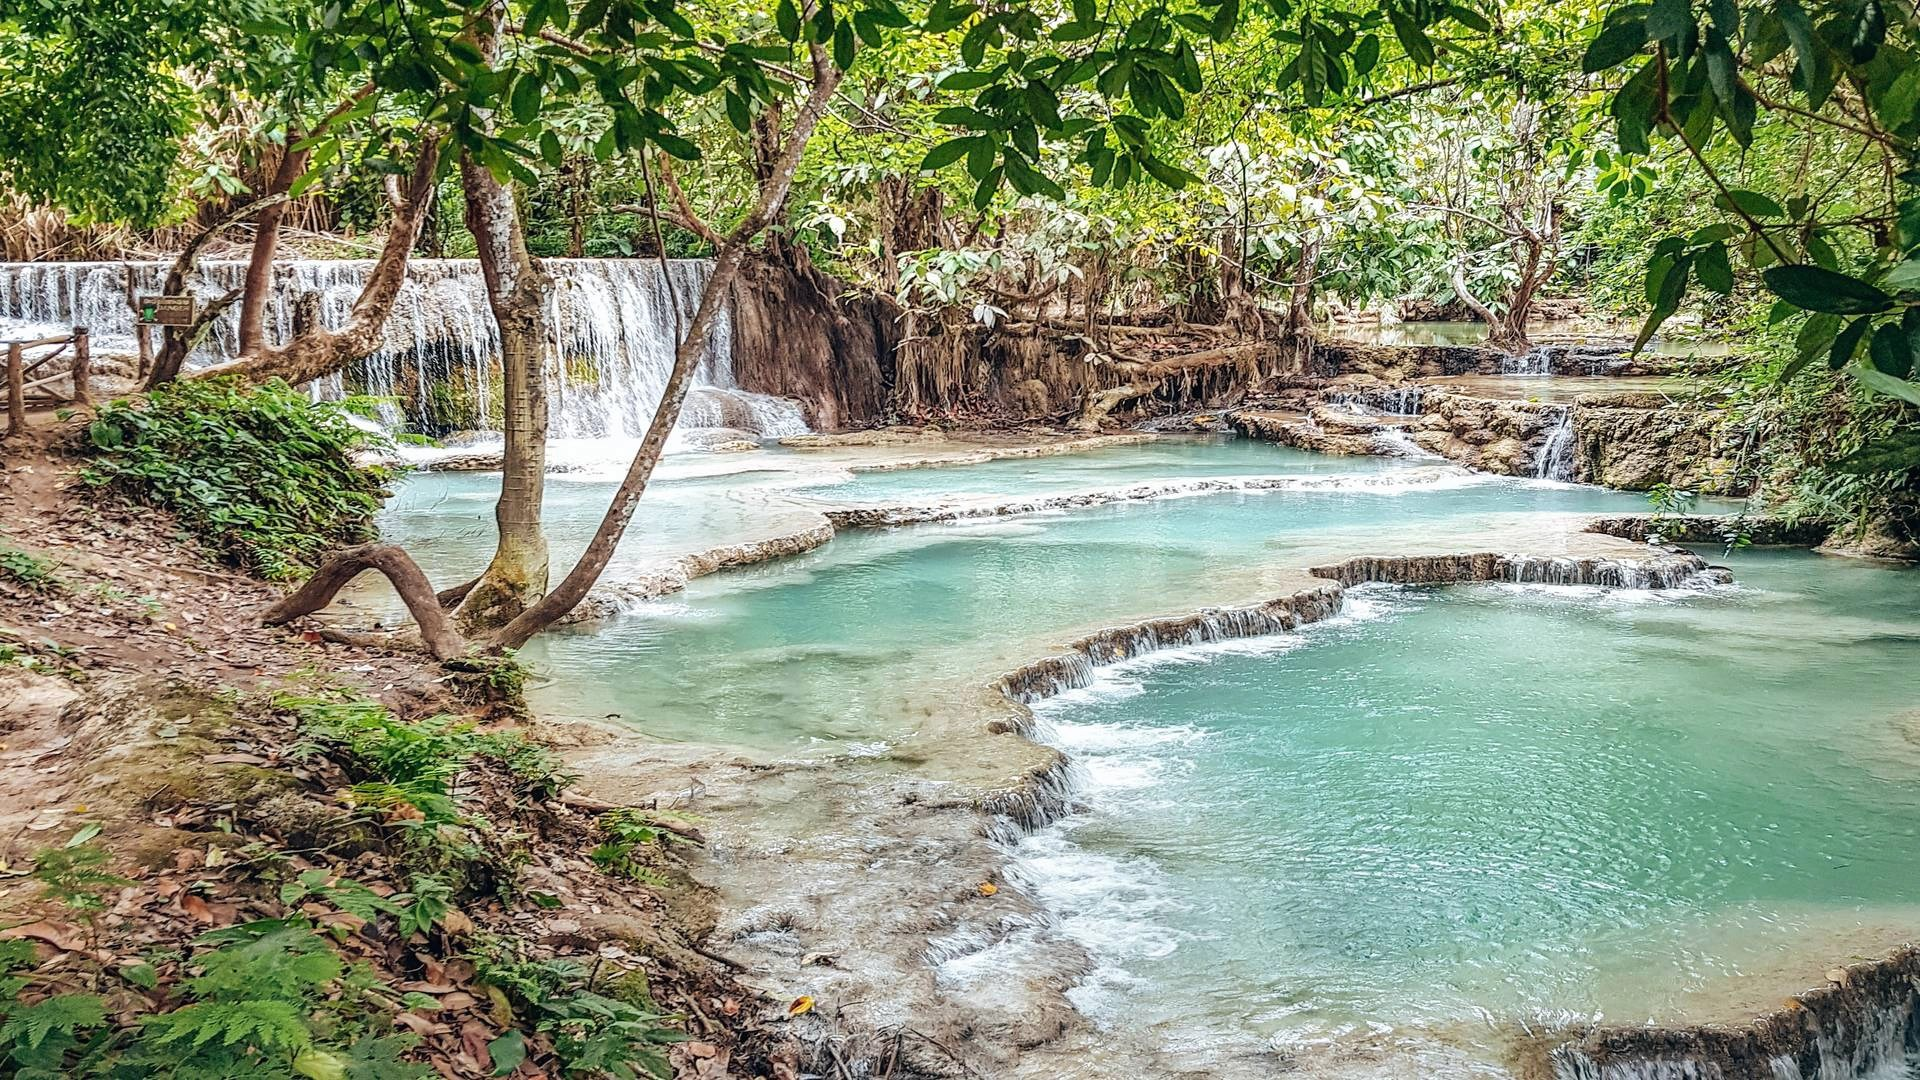 8 incredible things to do in Luang Prabang, Laos